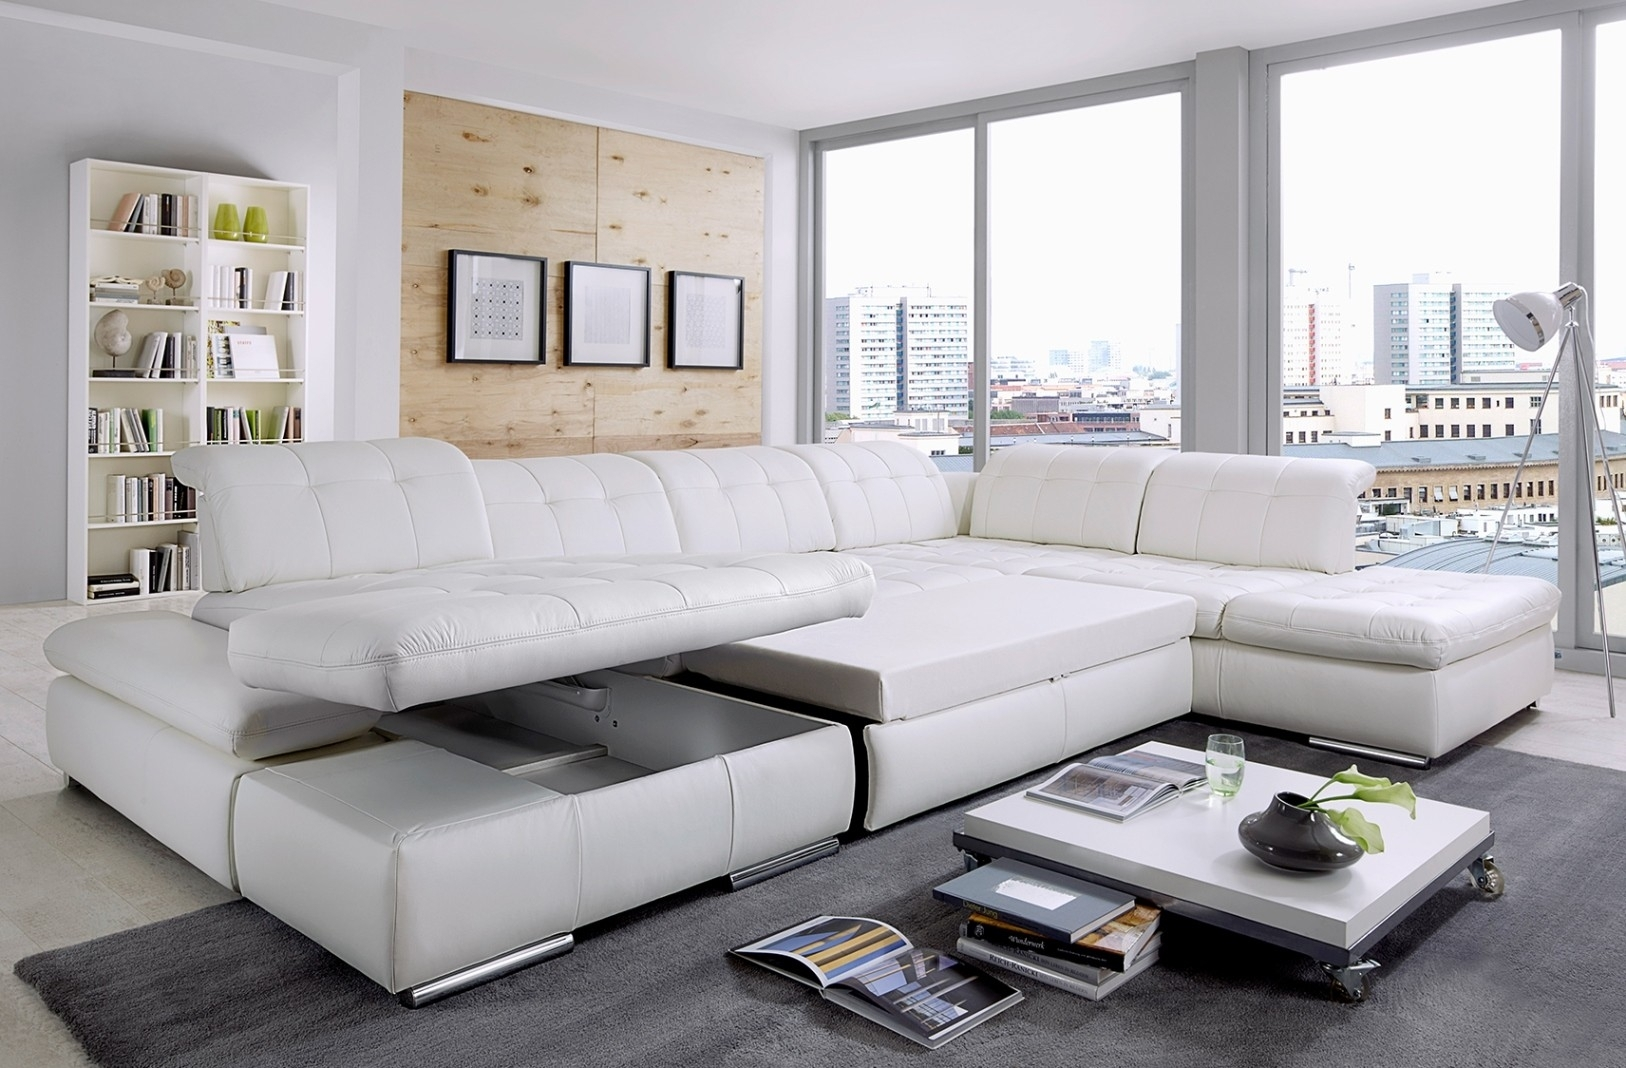 Best Modern Contemporary Furniture Stores Orlando Miami Florida Fl Throughout Nh Sectional Sofas (View 5 of 10)